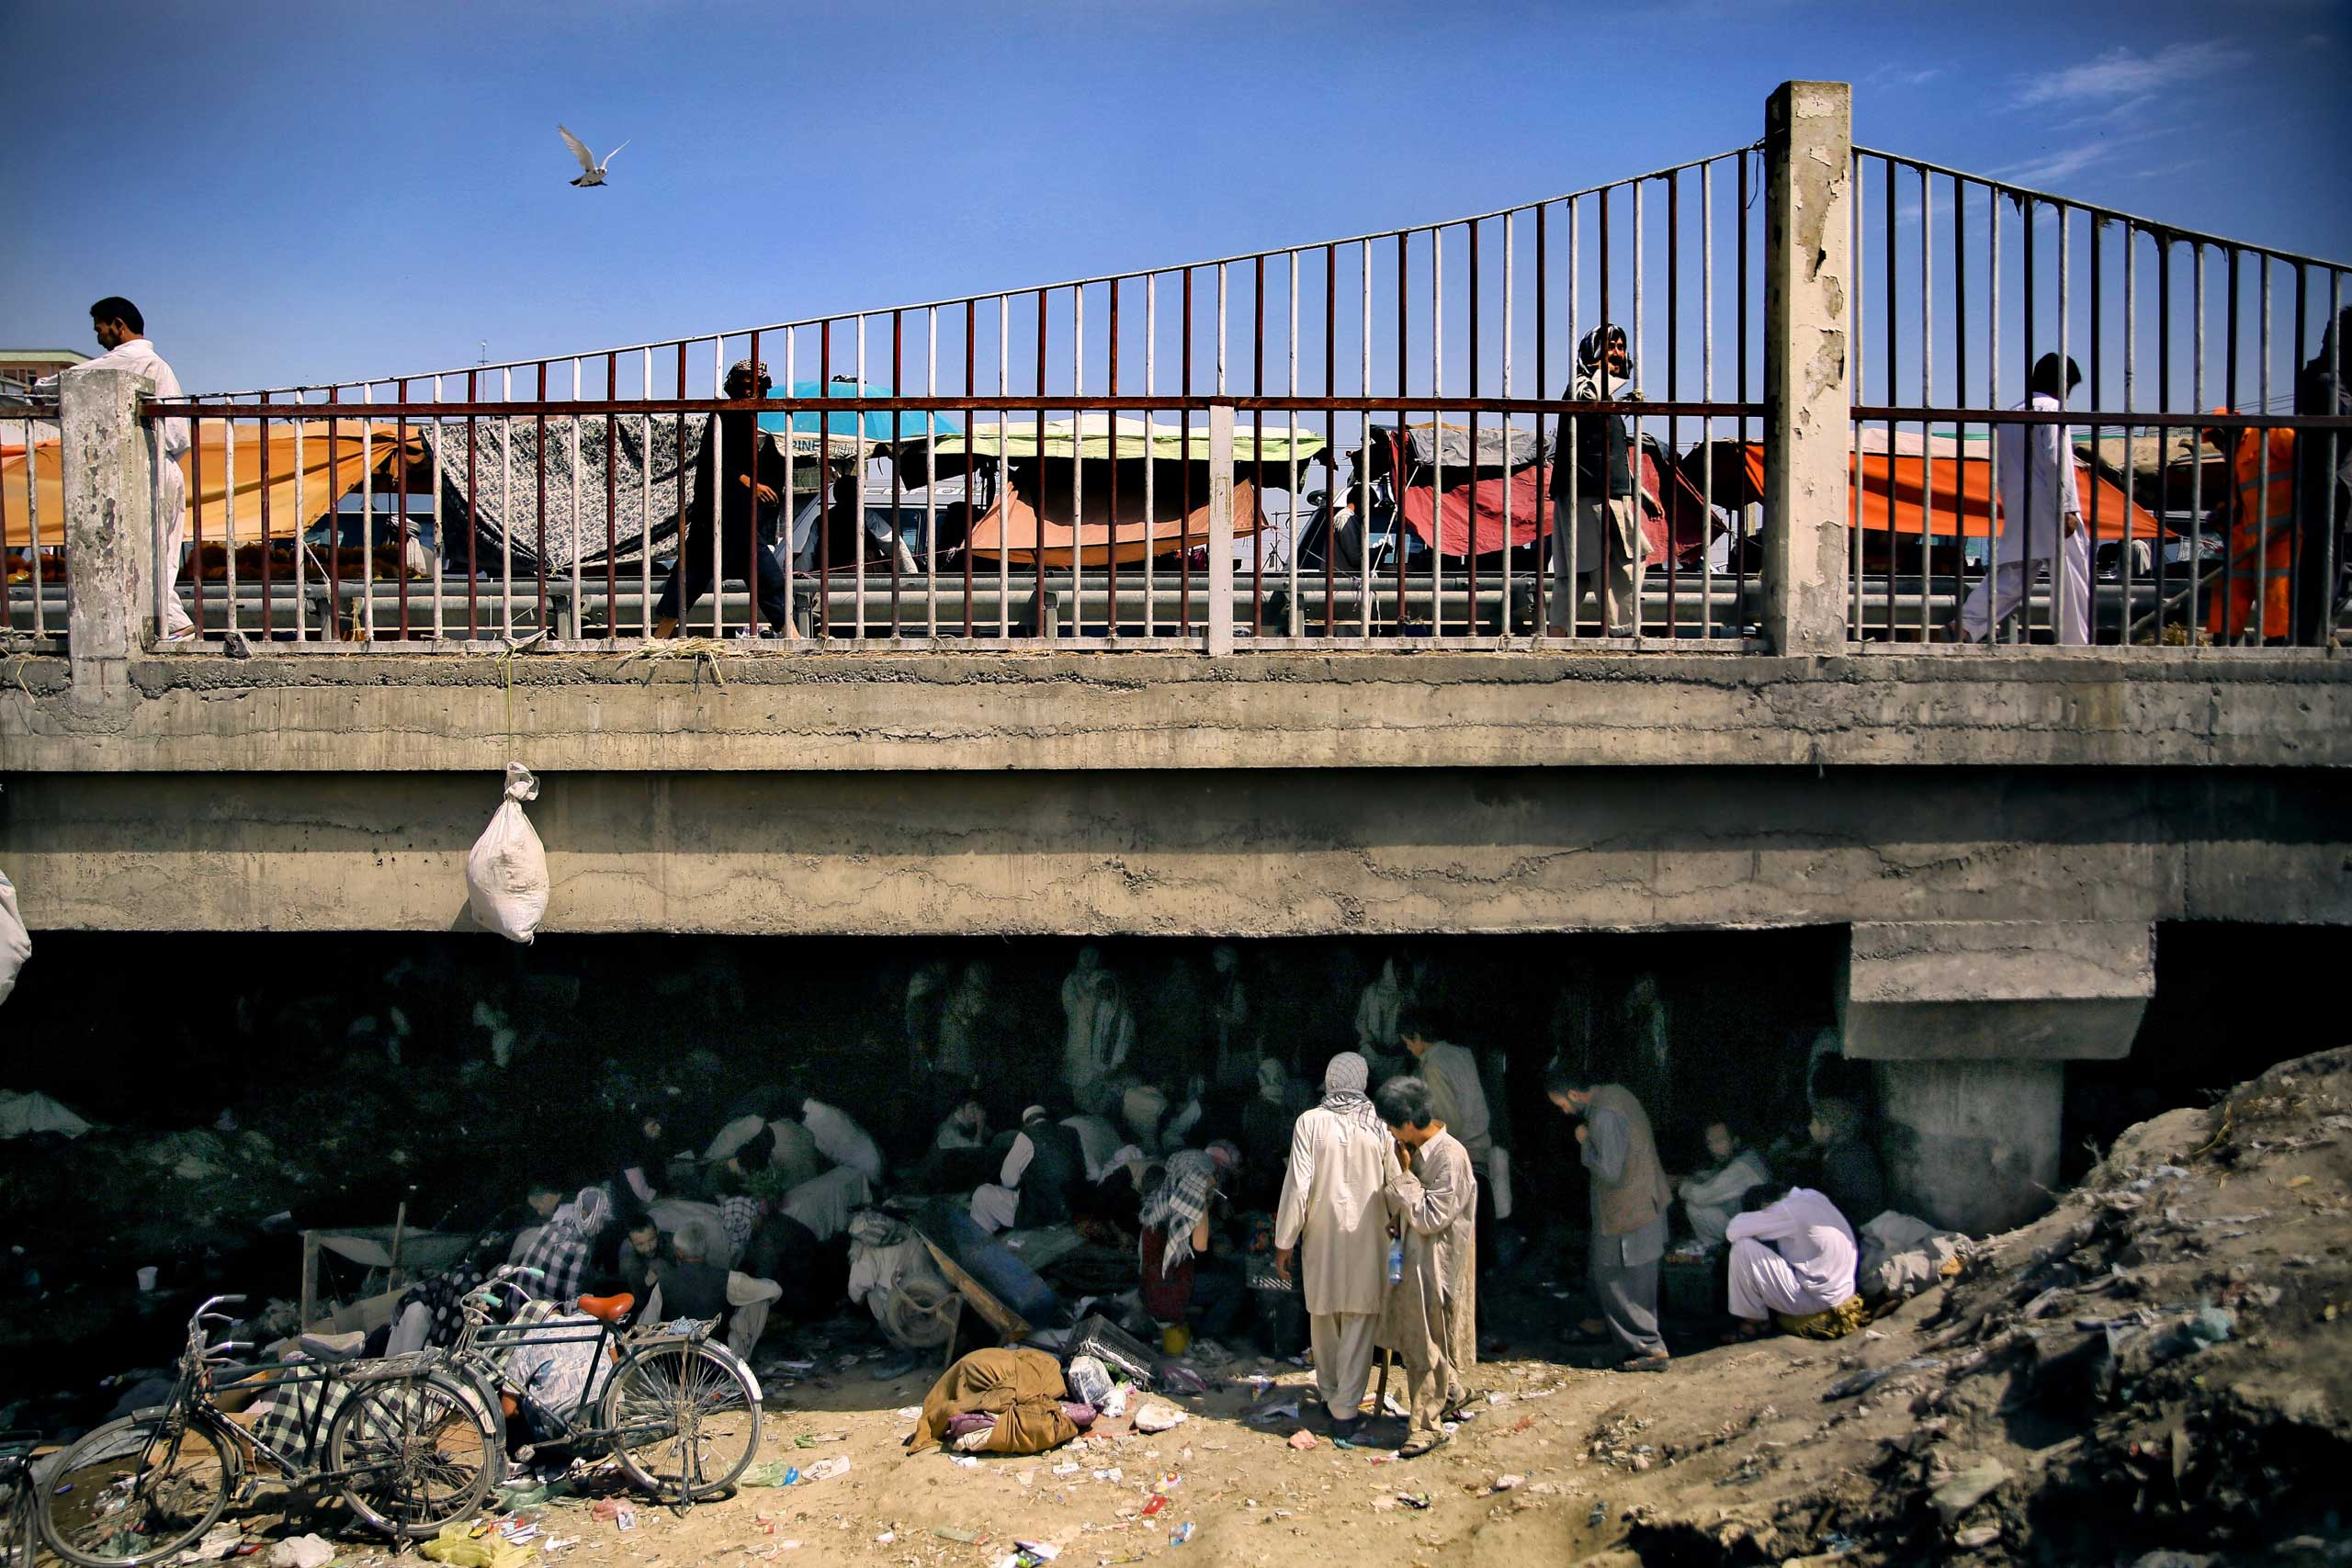 A view of Pul-e Sukhta bridge from the banks of the dried Kabul river on Aug. 26, 2014. While hundreds often thousands of addicts swarm below in a self-fueling network of drugs, crime and despair, life seems to continue unaffected above.